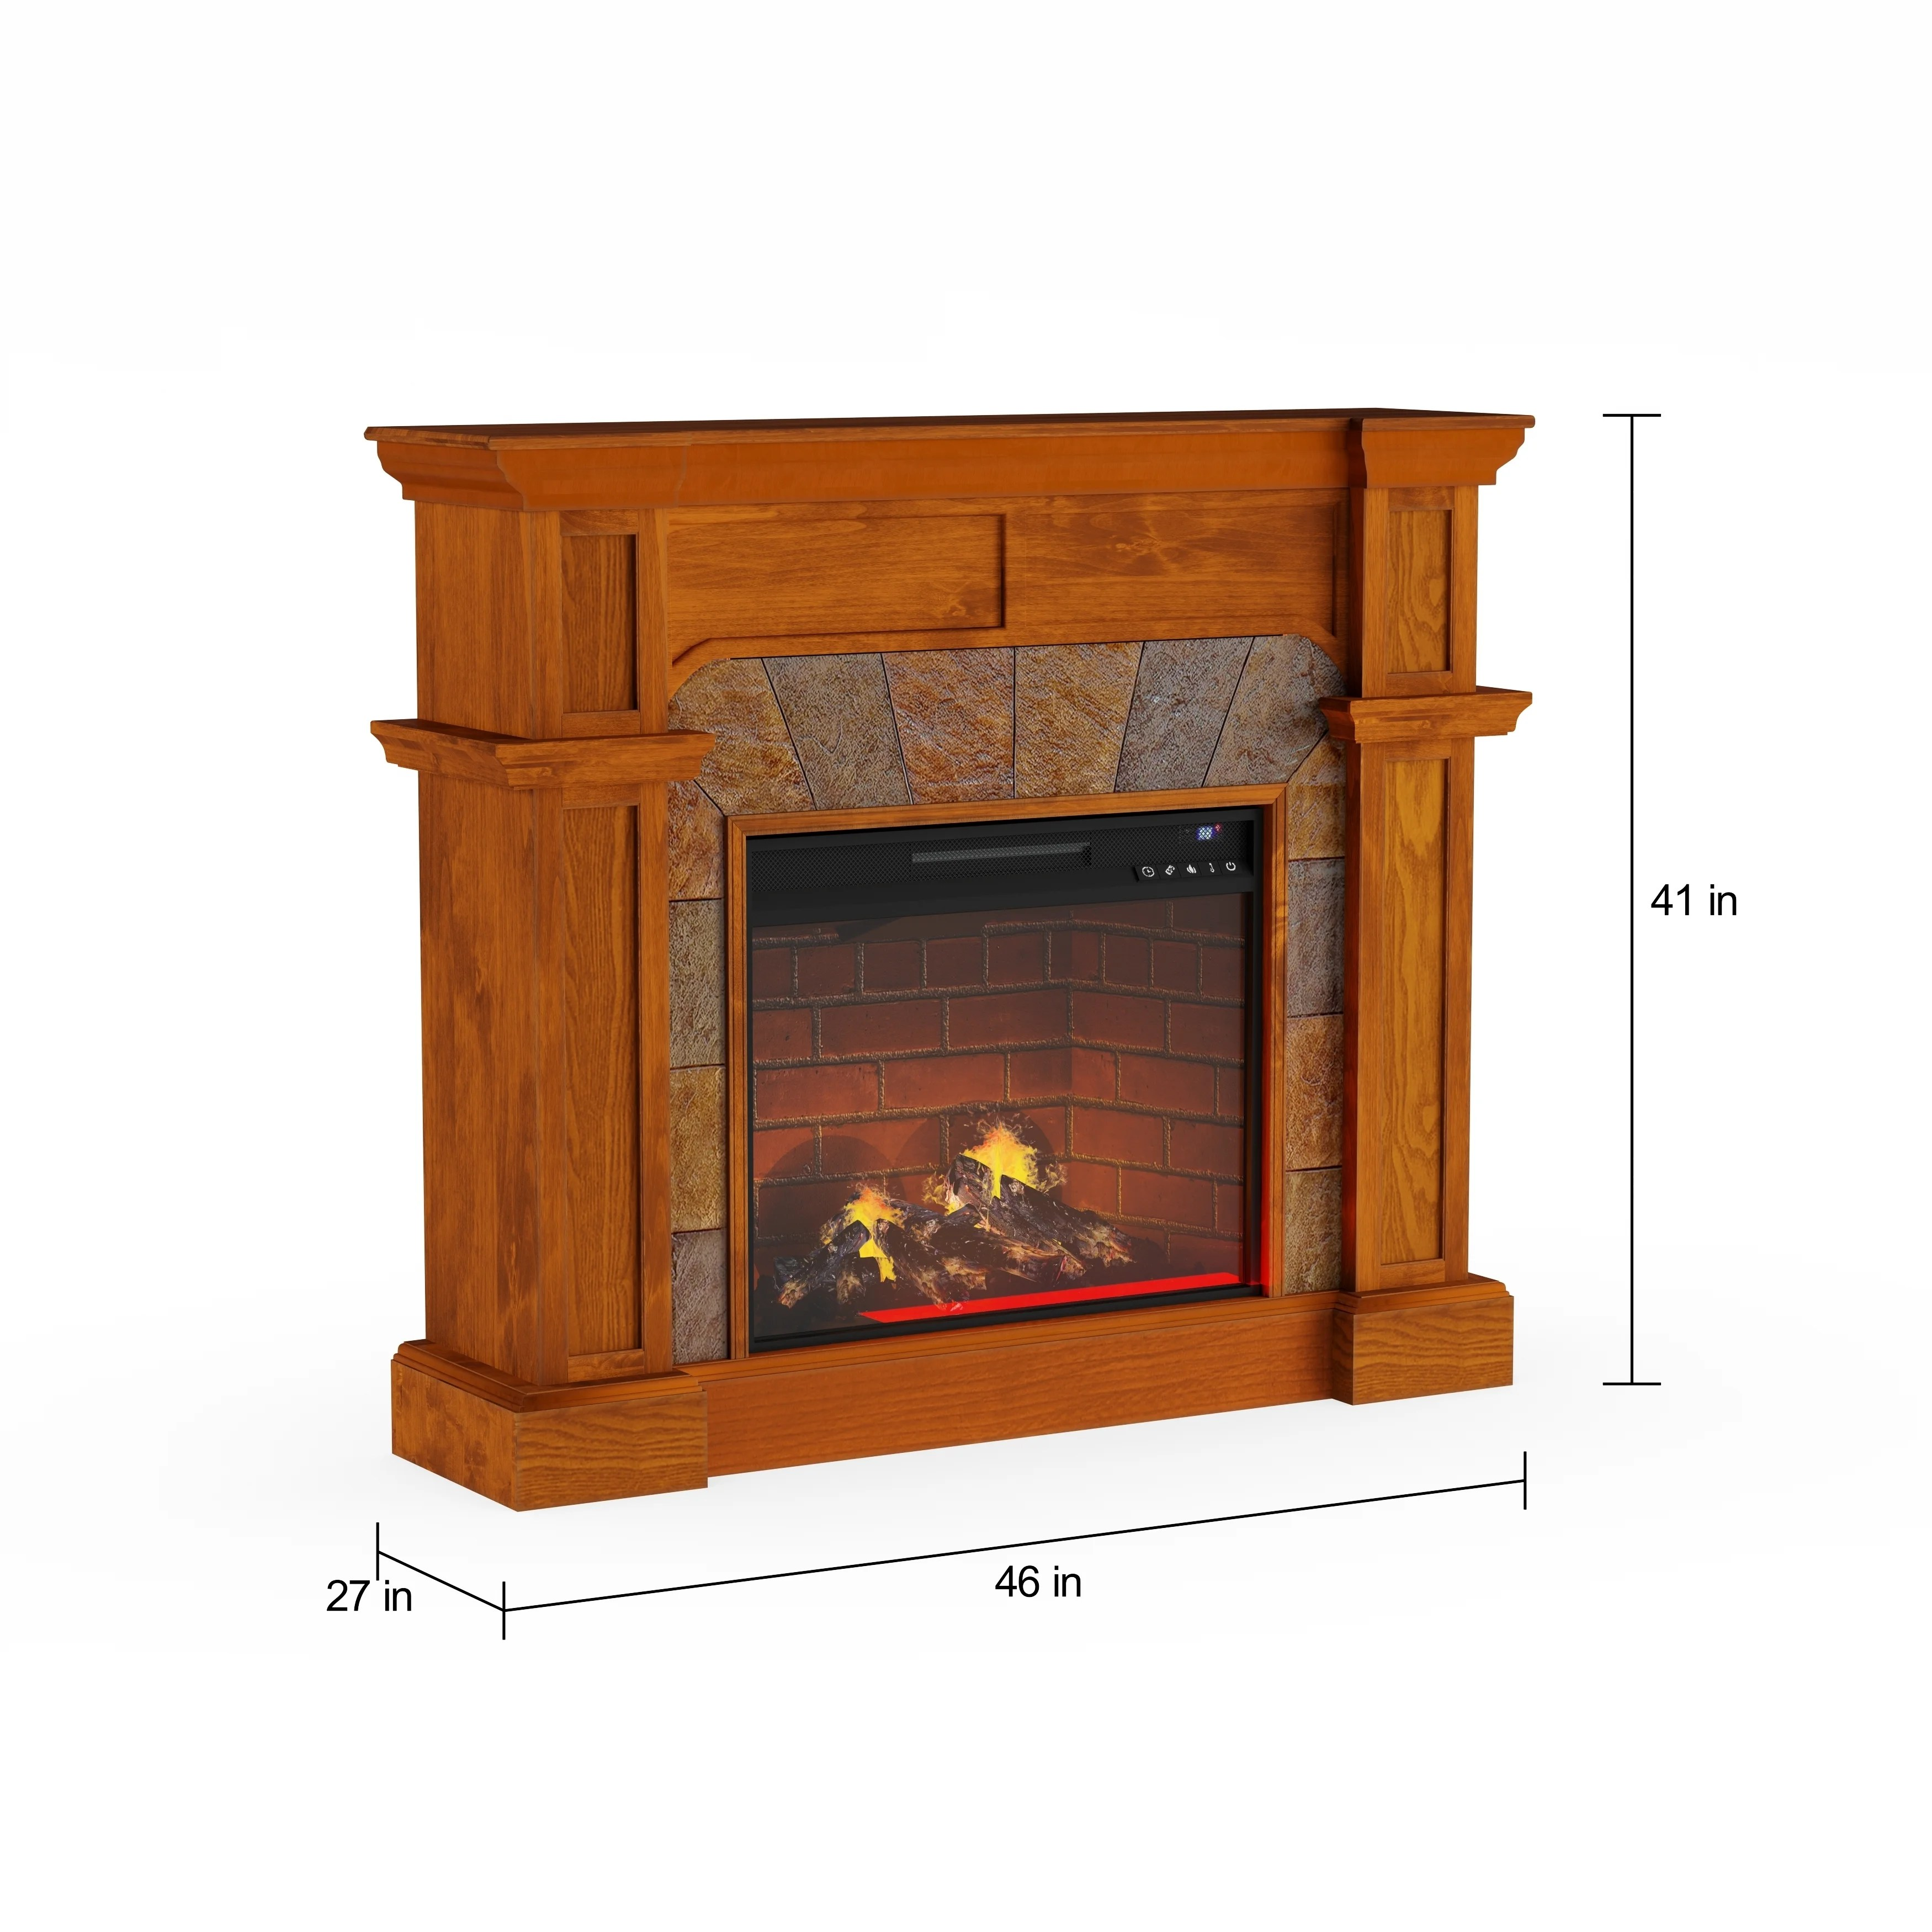 Fireplace Stone Copper Grove Amistad Mission Oak Faux Stone Corner Infrared Fireplace